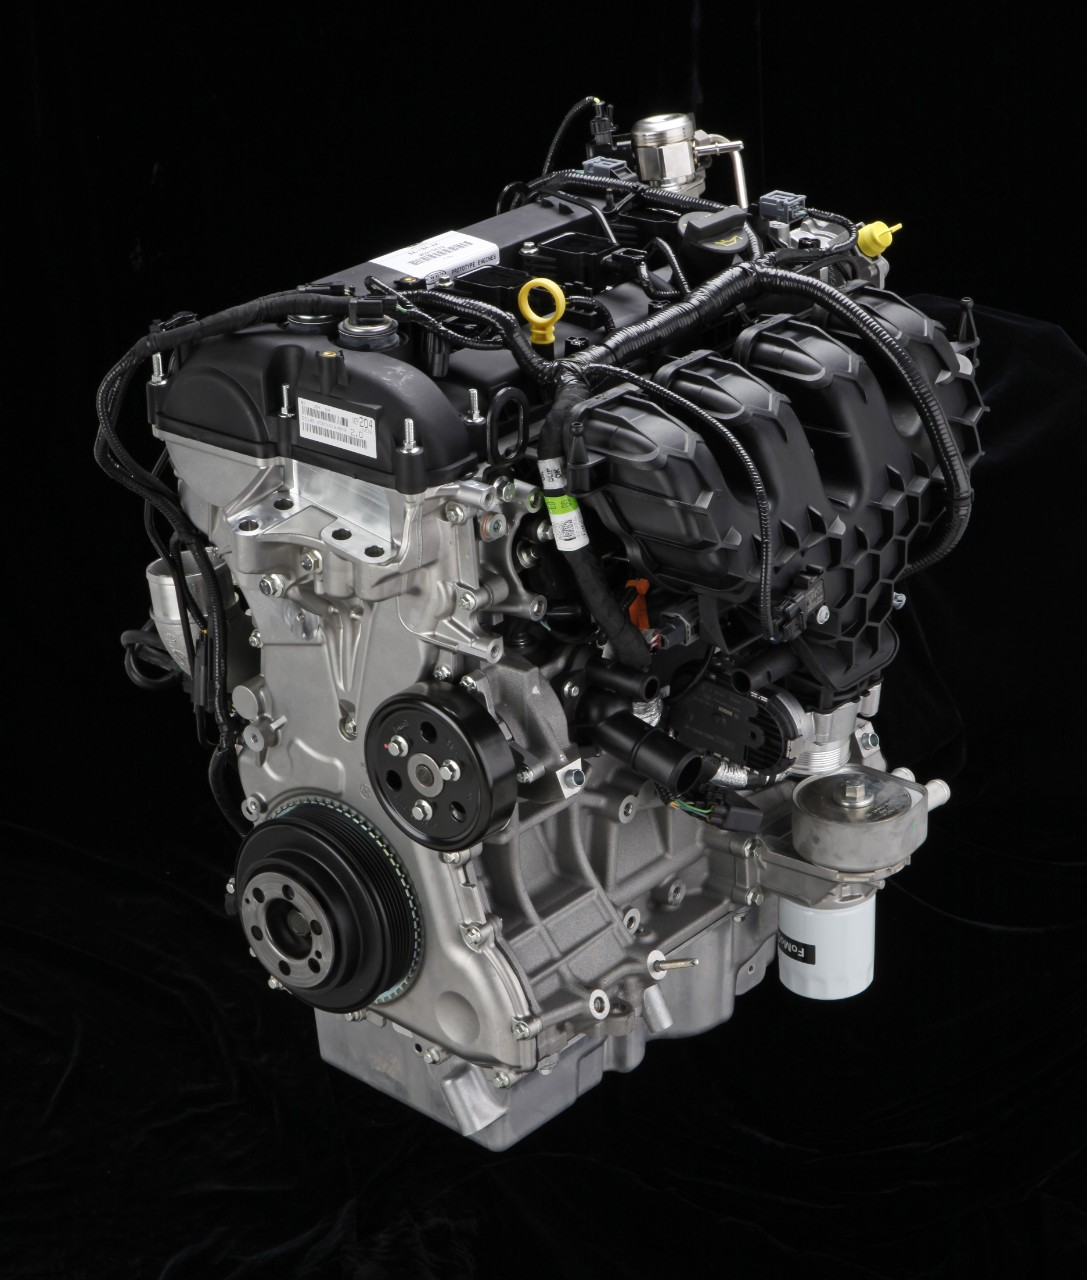 ecoboost ford engine liter twin scroll escape edge engines 0l cleveland plant cylinder focus turbo se st production fusion ohio